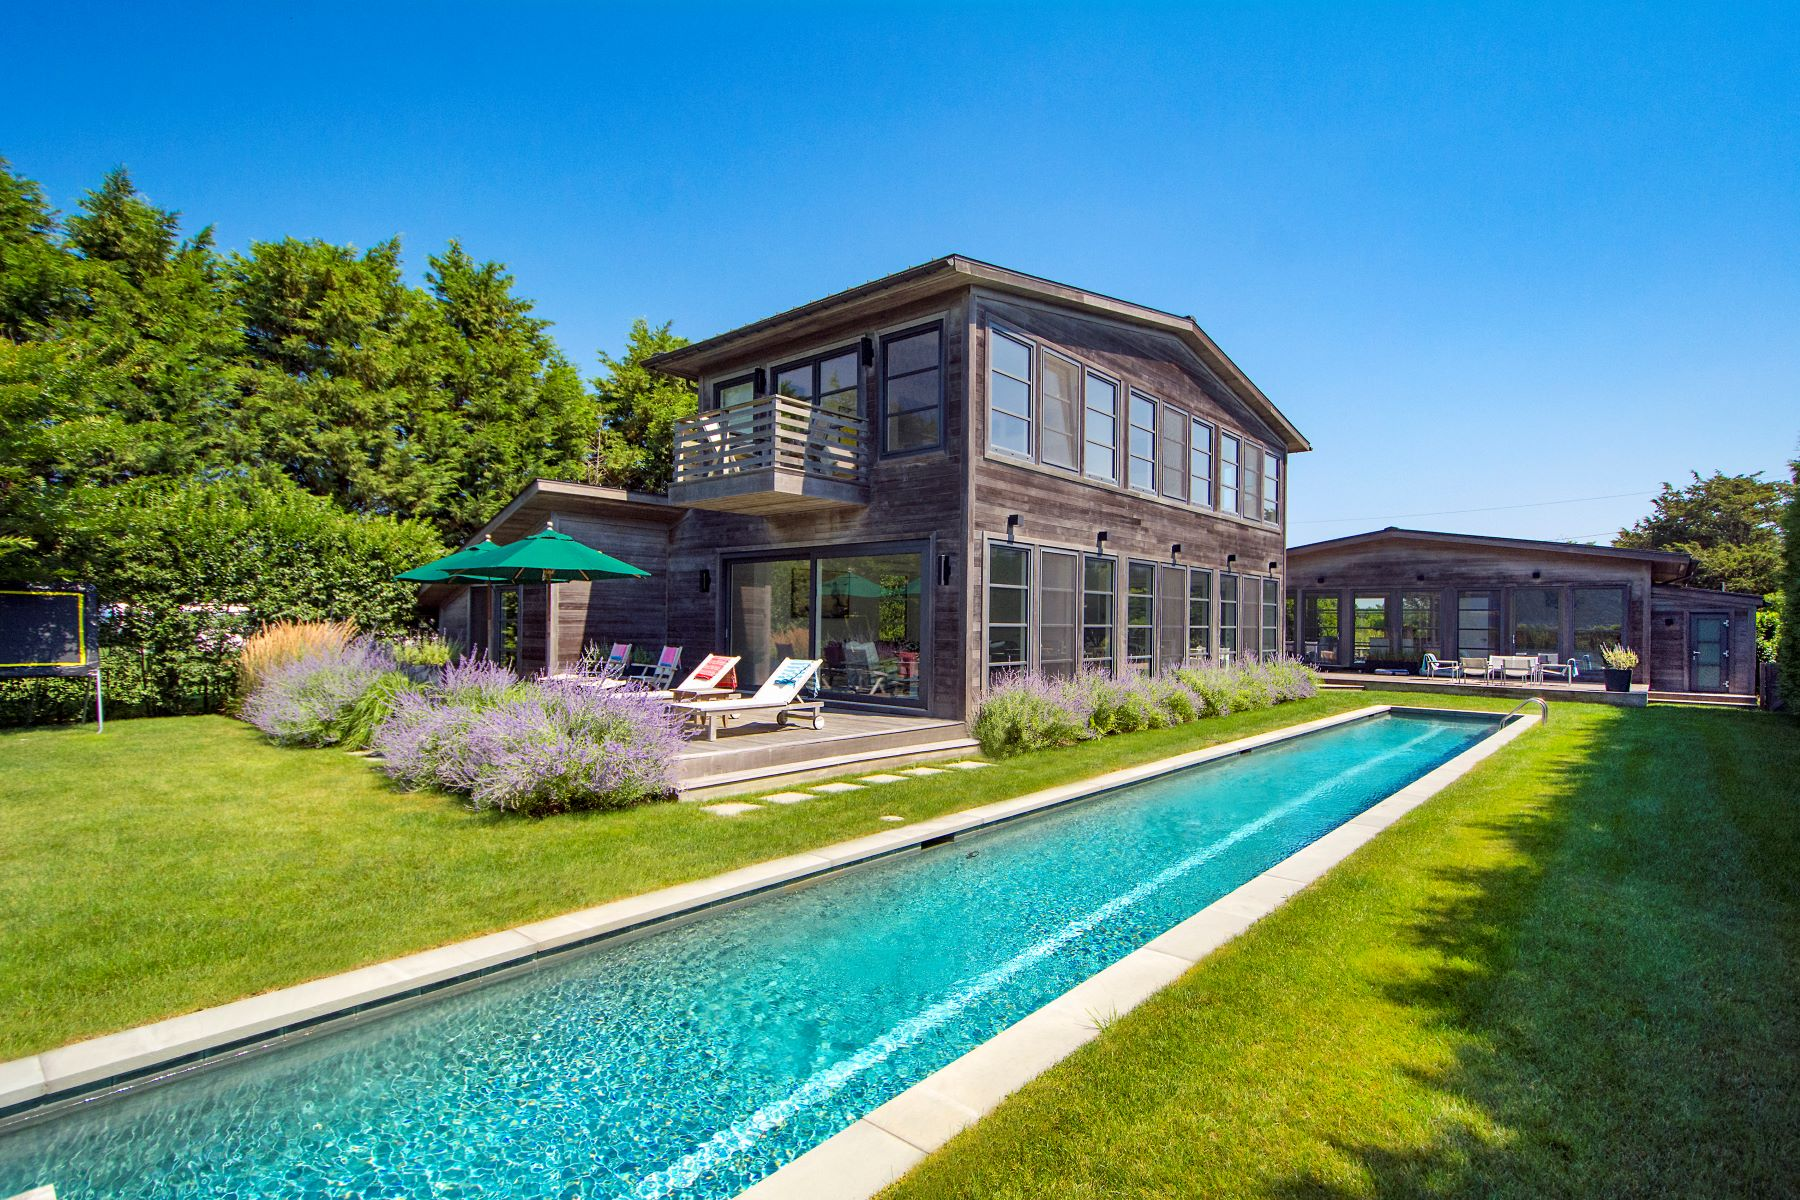 Single Family Homes for Sale at Modern Compound, Immediate Ocean Access. 108 Town Line Road Sagaponack, New York 11962 United States